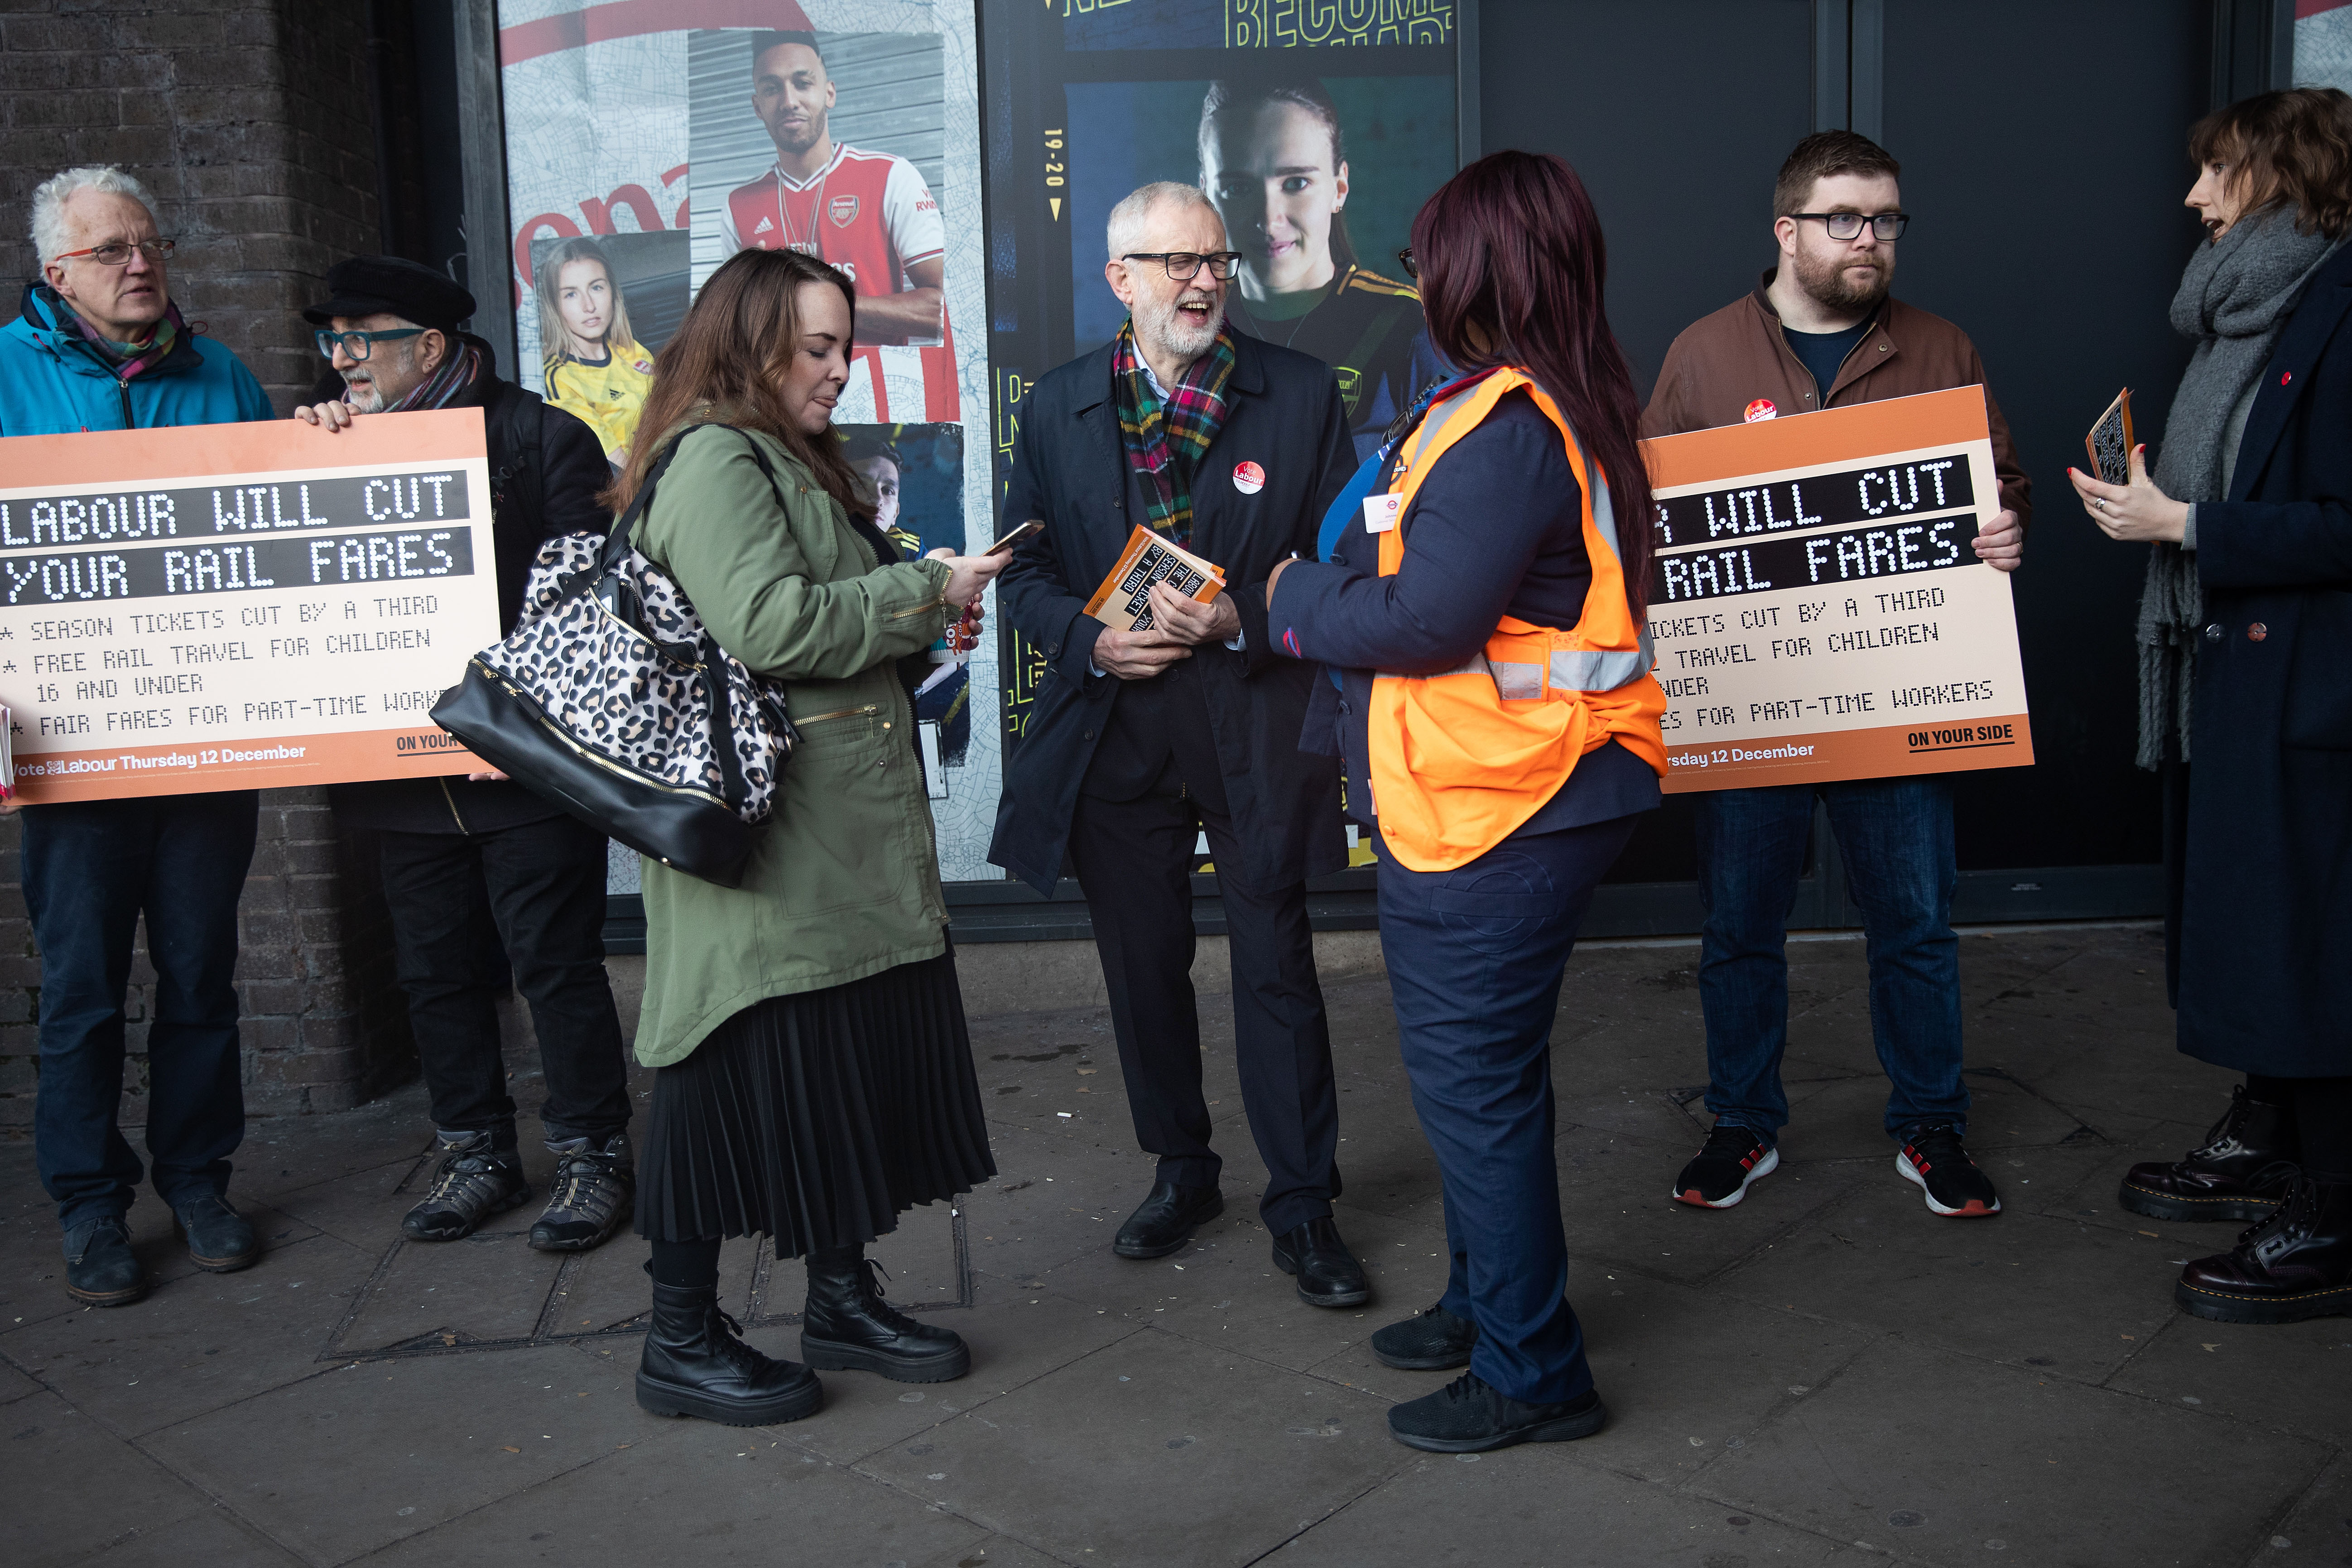 Labour leader, Jeremy Corbyn (centre) leafleting outside Finsbury Park station, London, whilst on the General Election campaign trail.